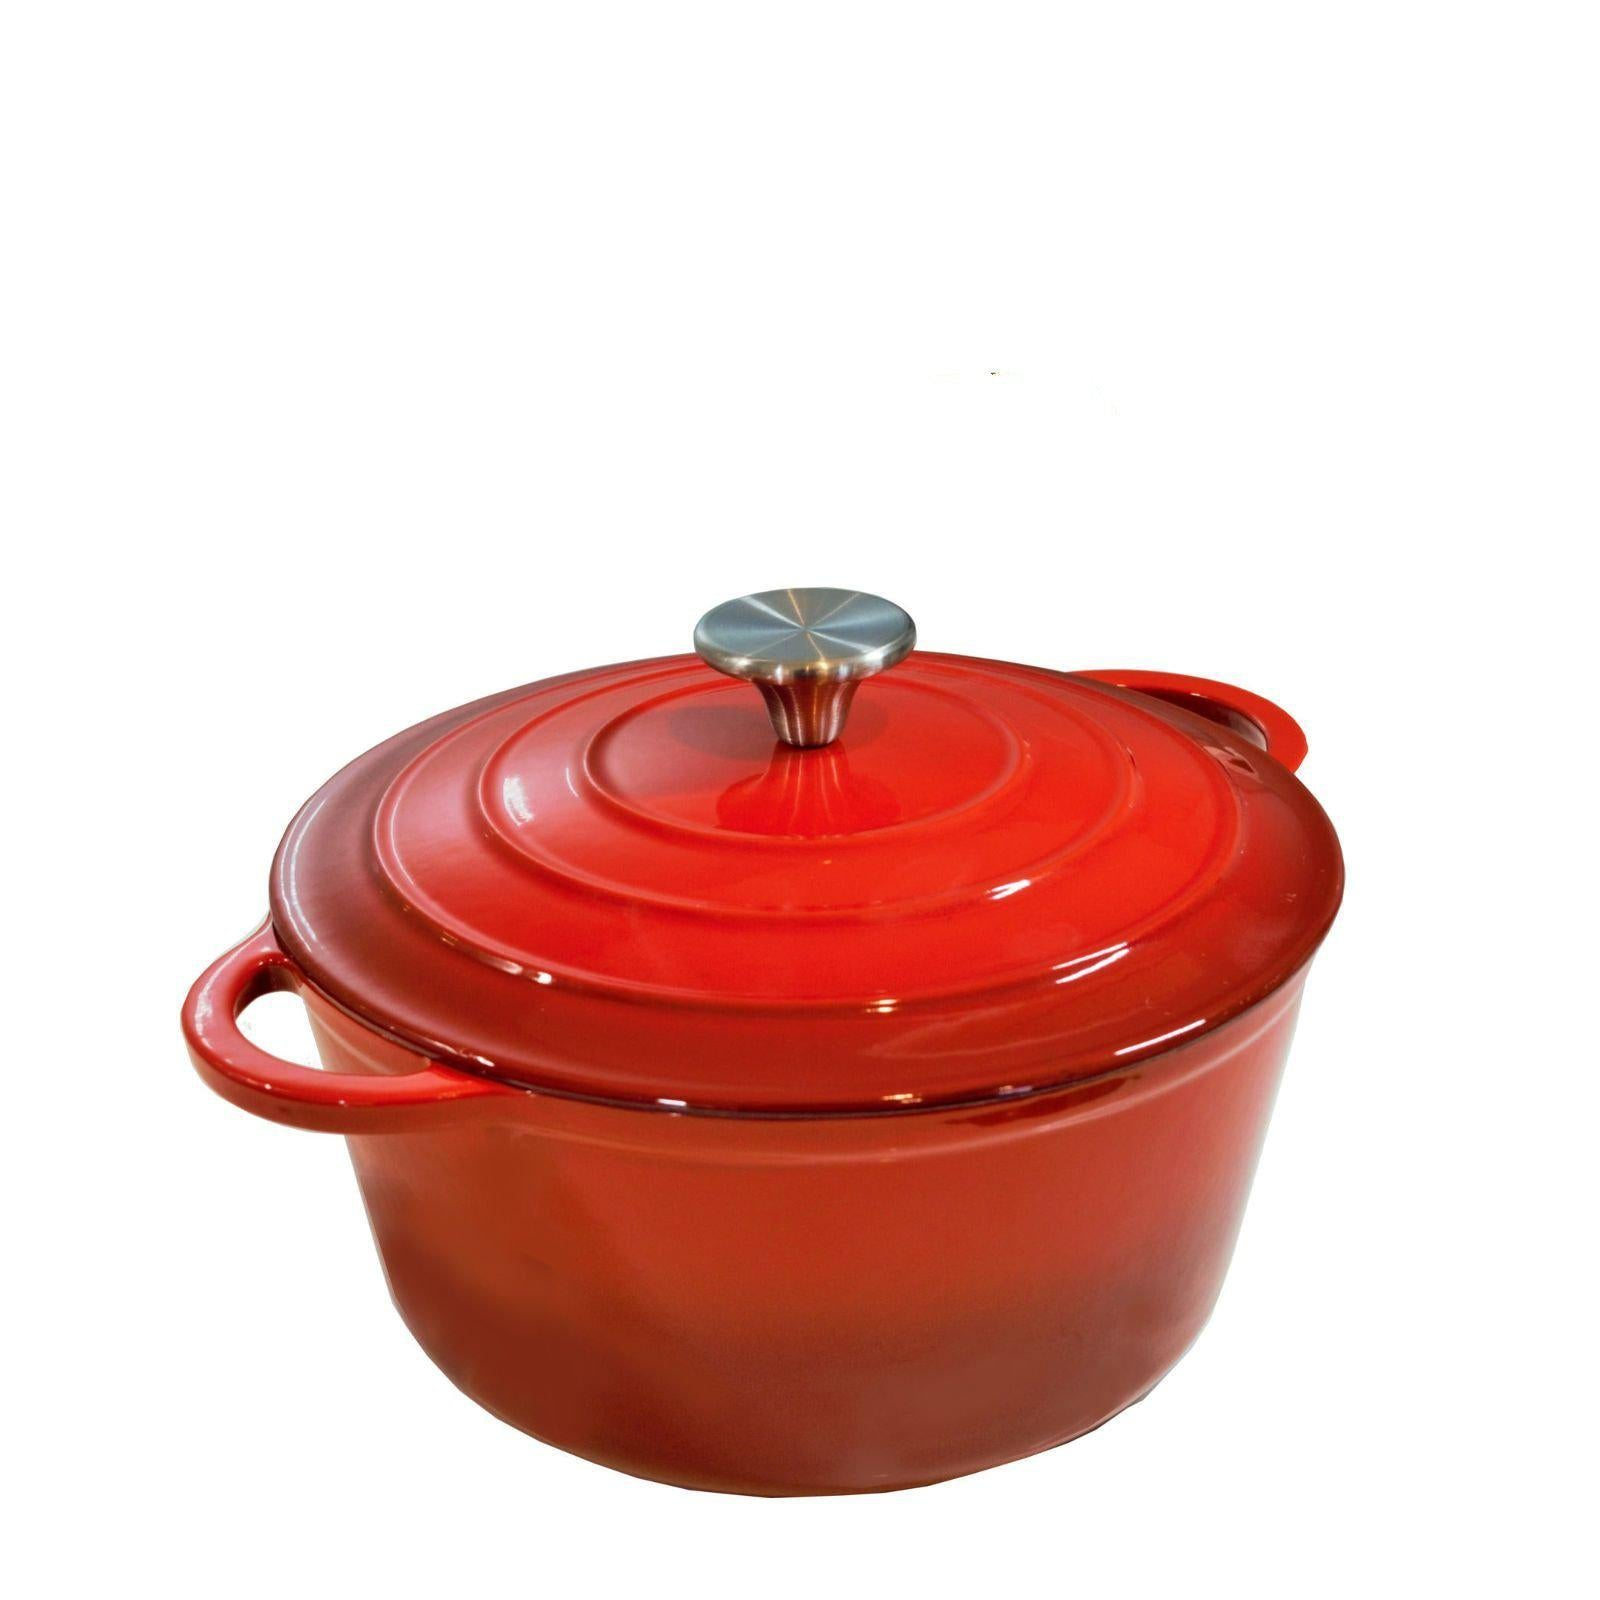 Exclusive Offer From Chef's Quality-Chef's Quality Cookware